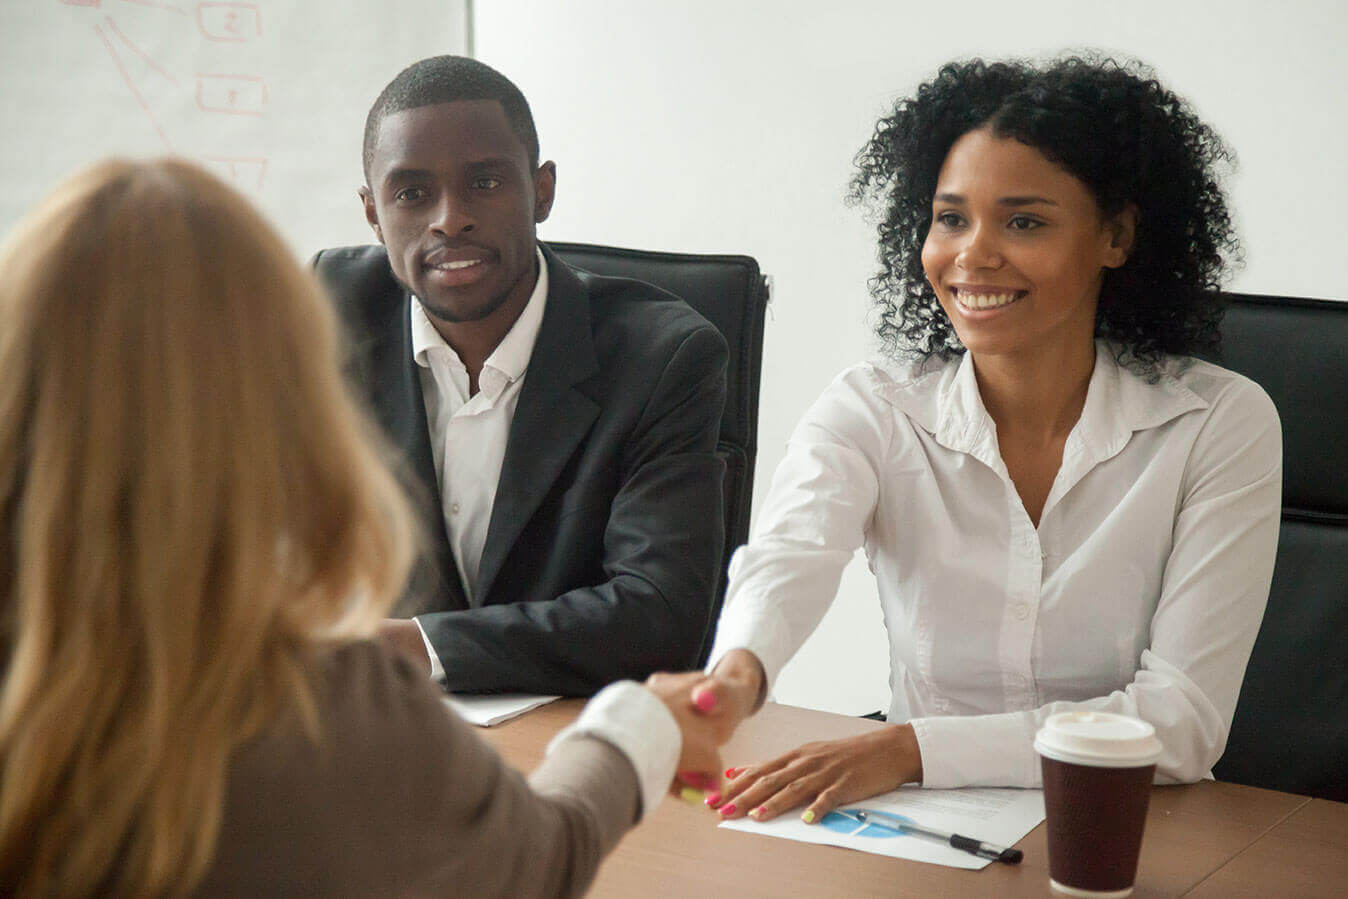 Appoint the right people in the right roles